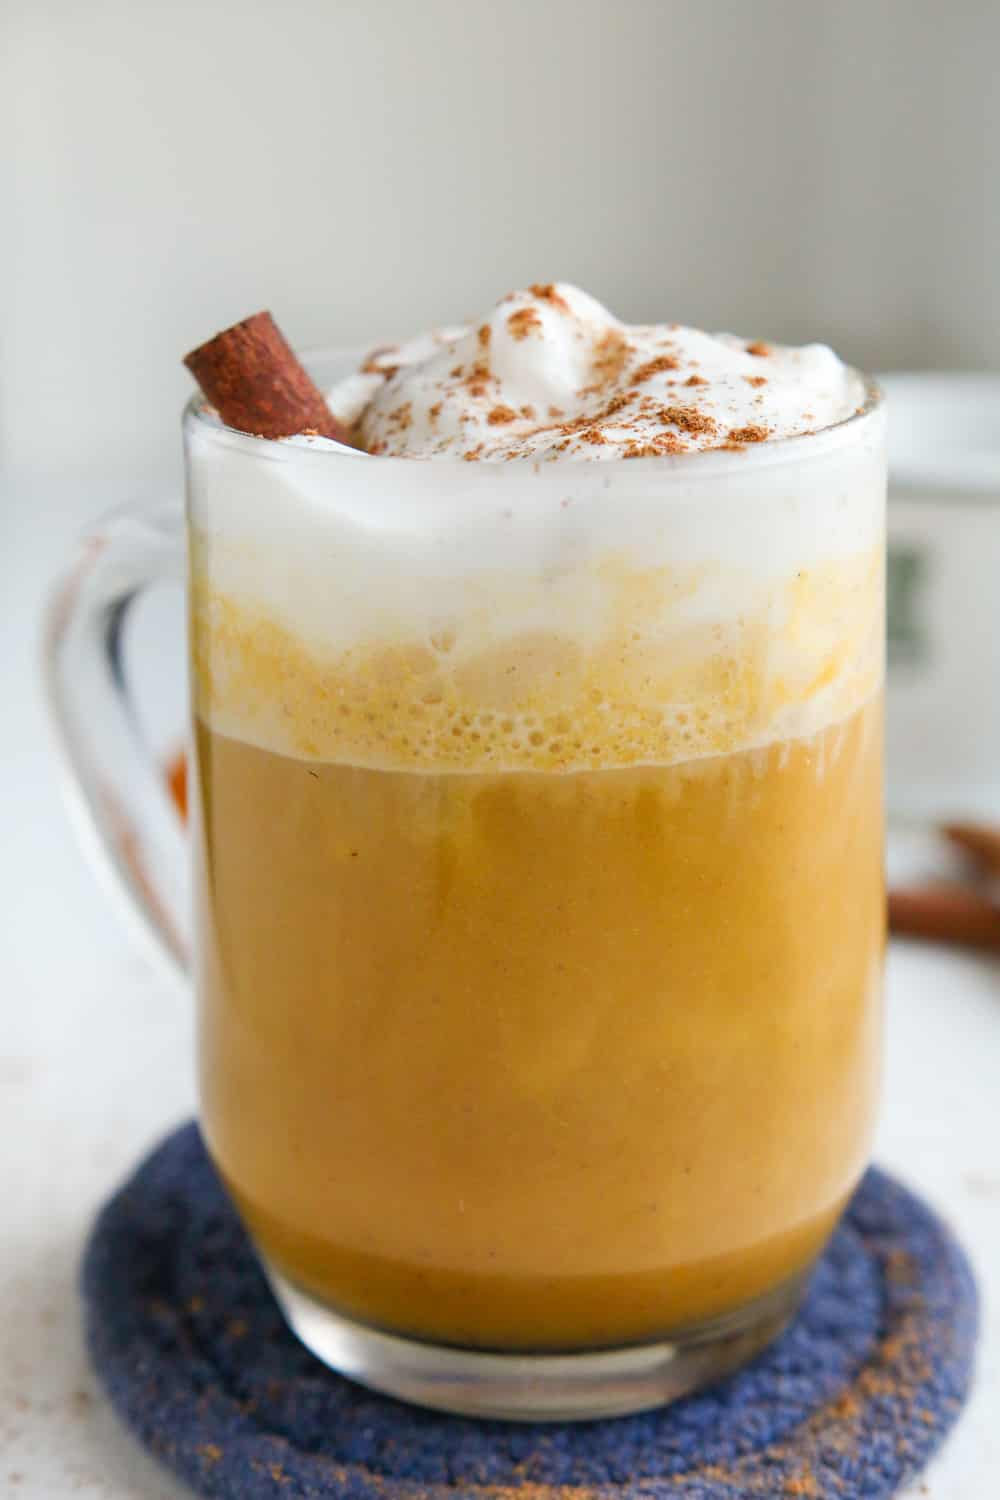 A pumpkin spice latte in a clear glass cup, and it's topped with whipped cream, a cinnamon stick, and spices.